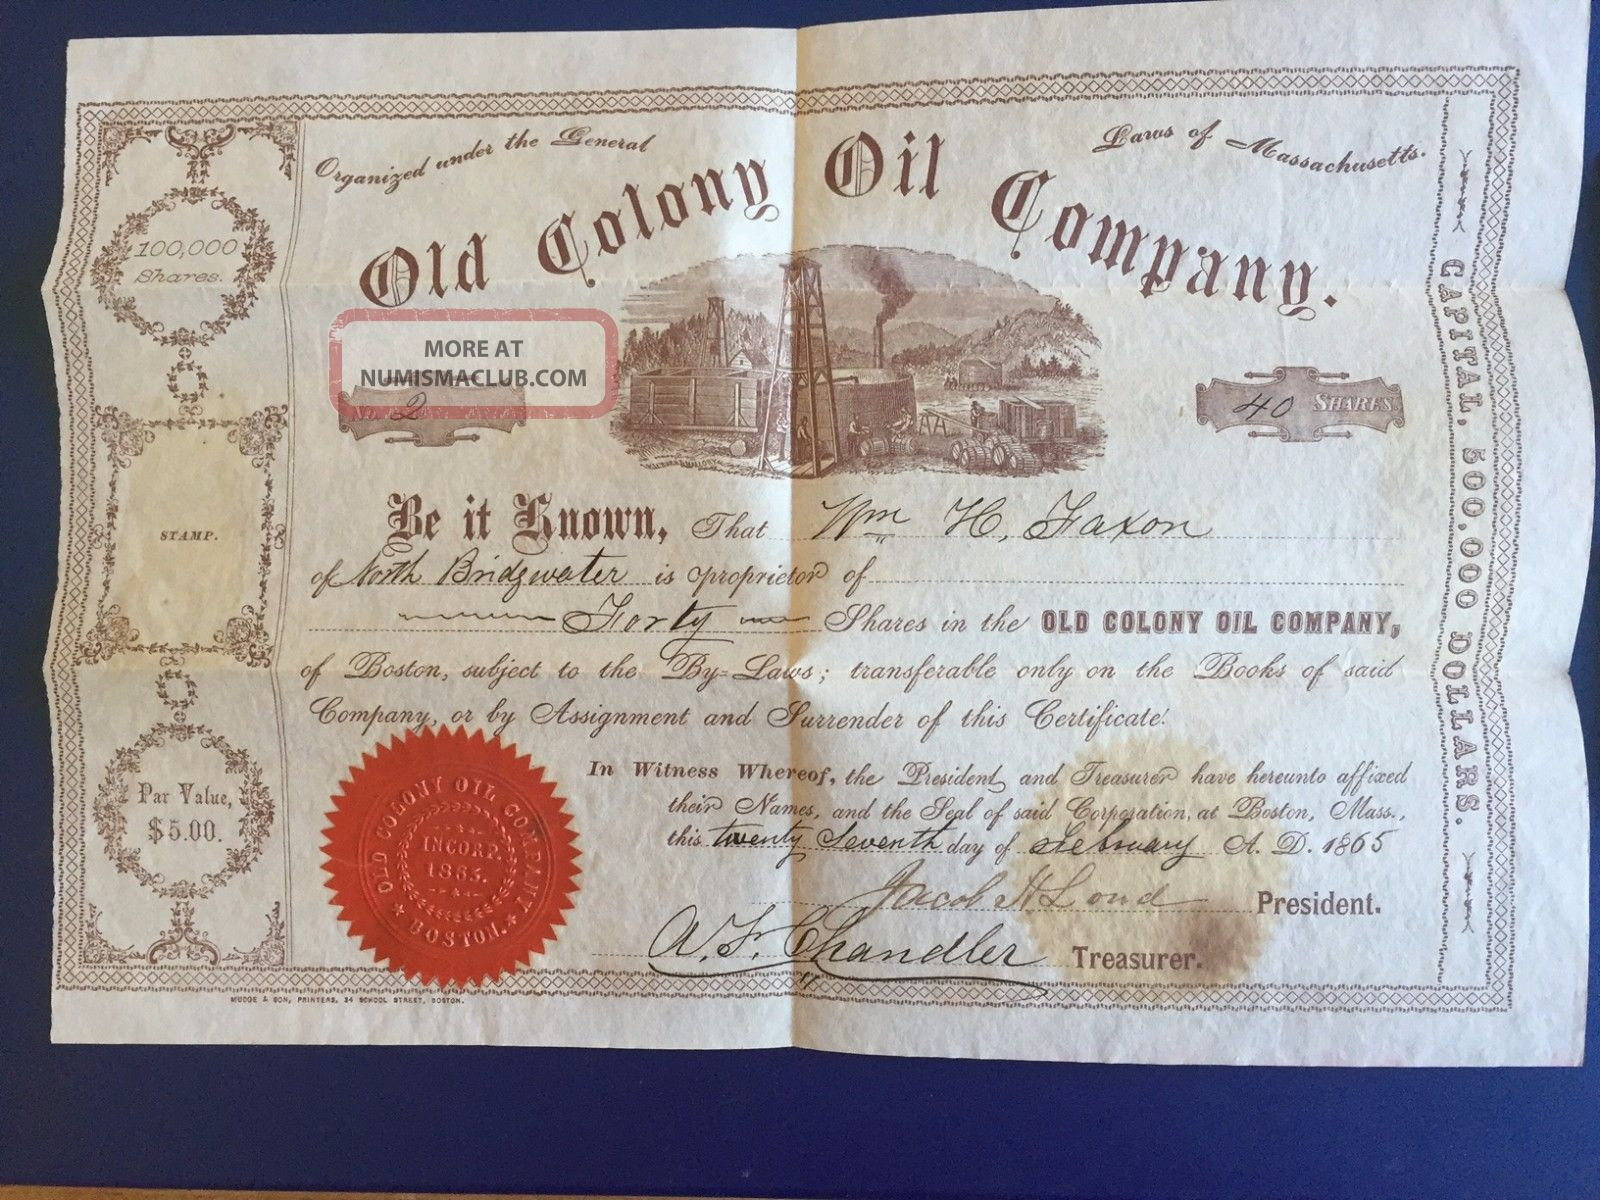 Old Colony Oil Company Stock Certificate - 1865